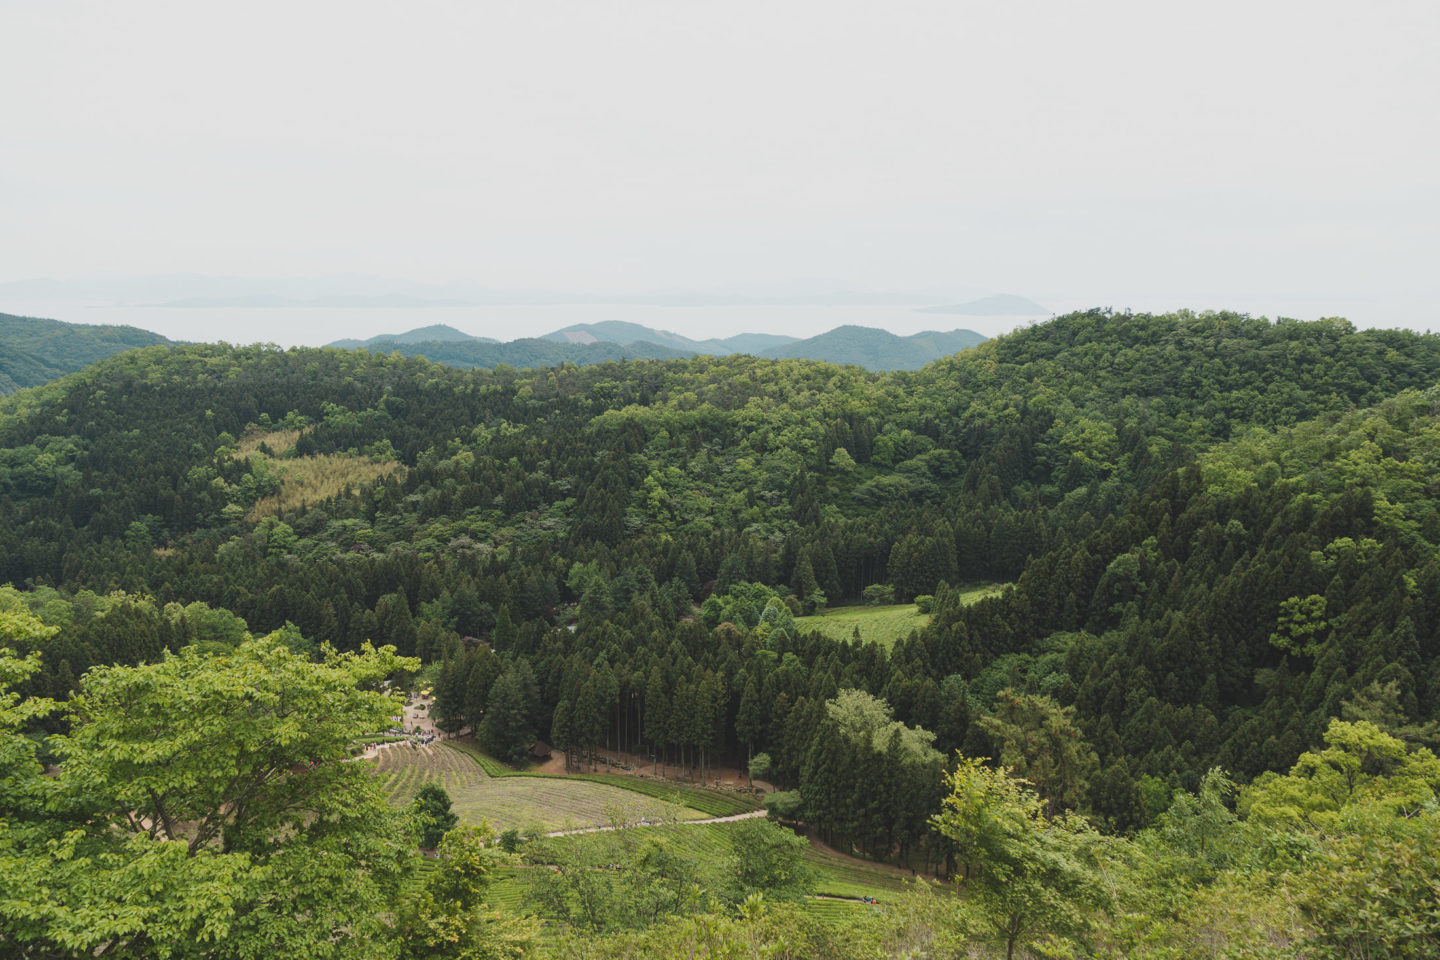 view of boseong from the top of the fields looking out to the sea